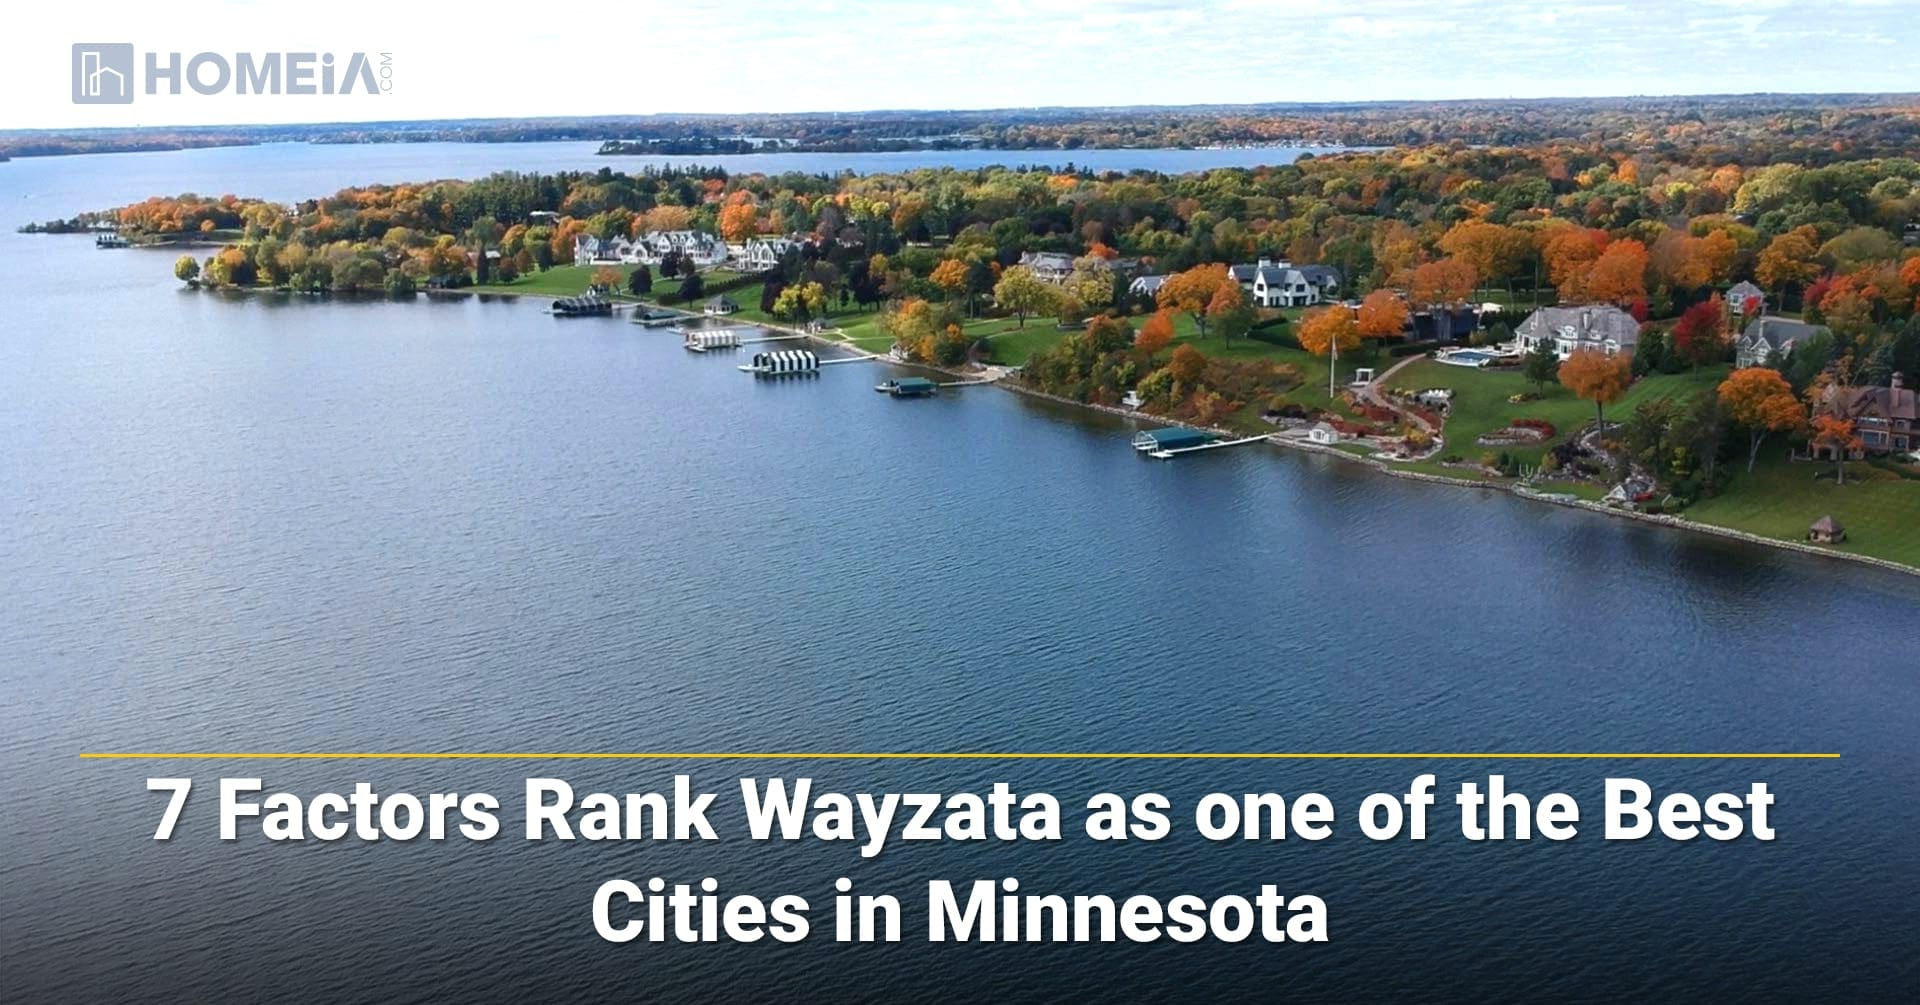 7 Factors Rank Wayzata, MN as One of the Best Cities for Living in 2020